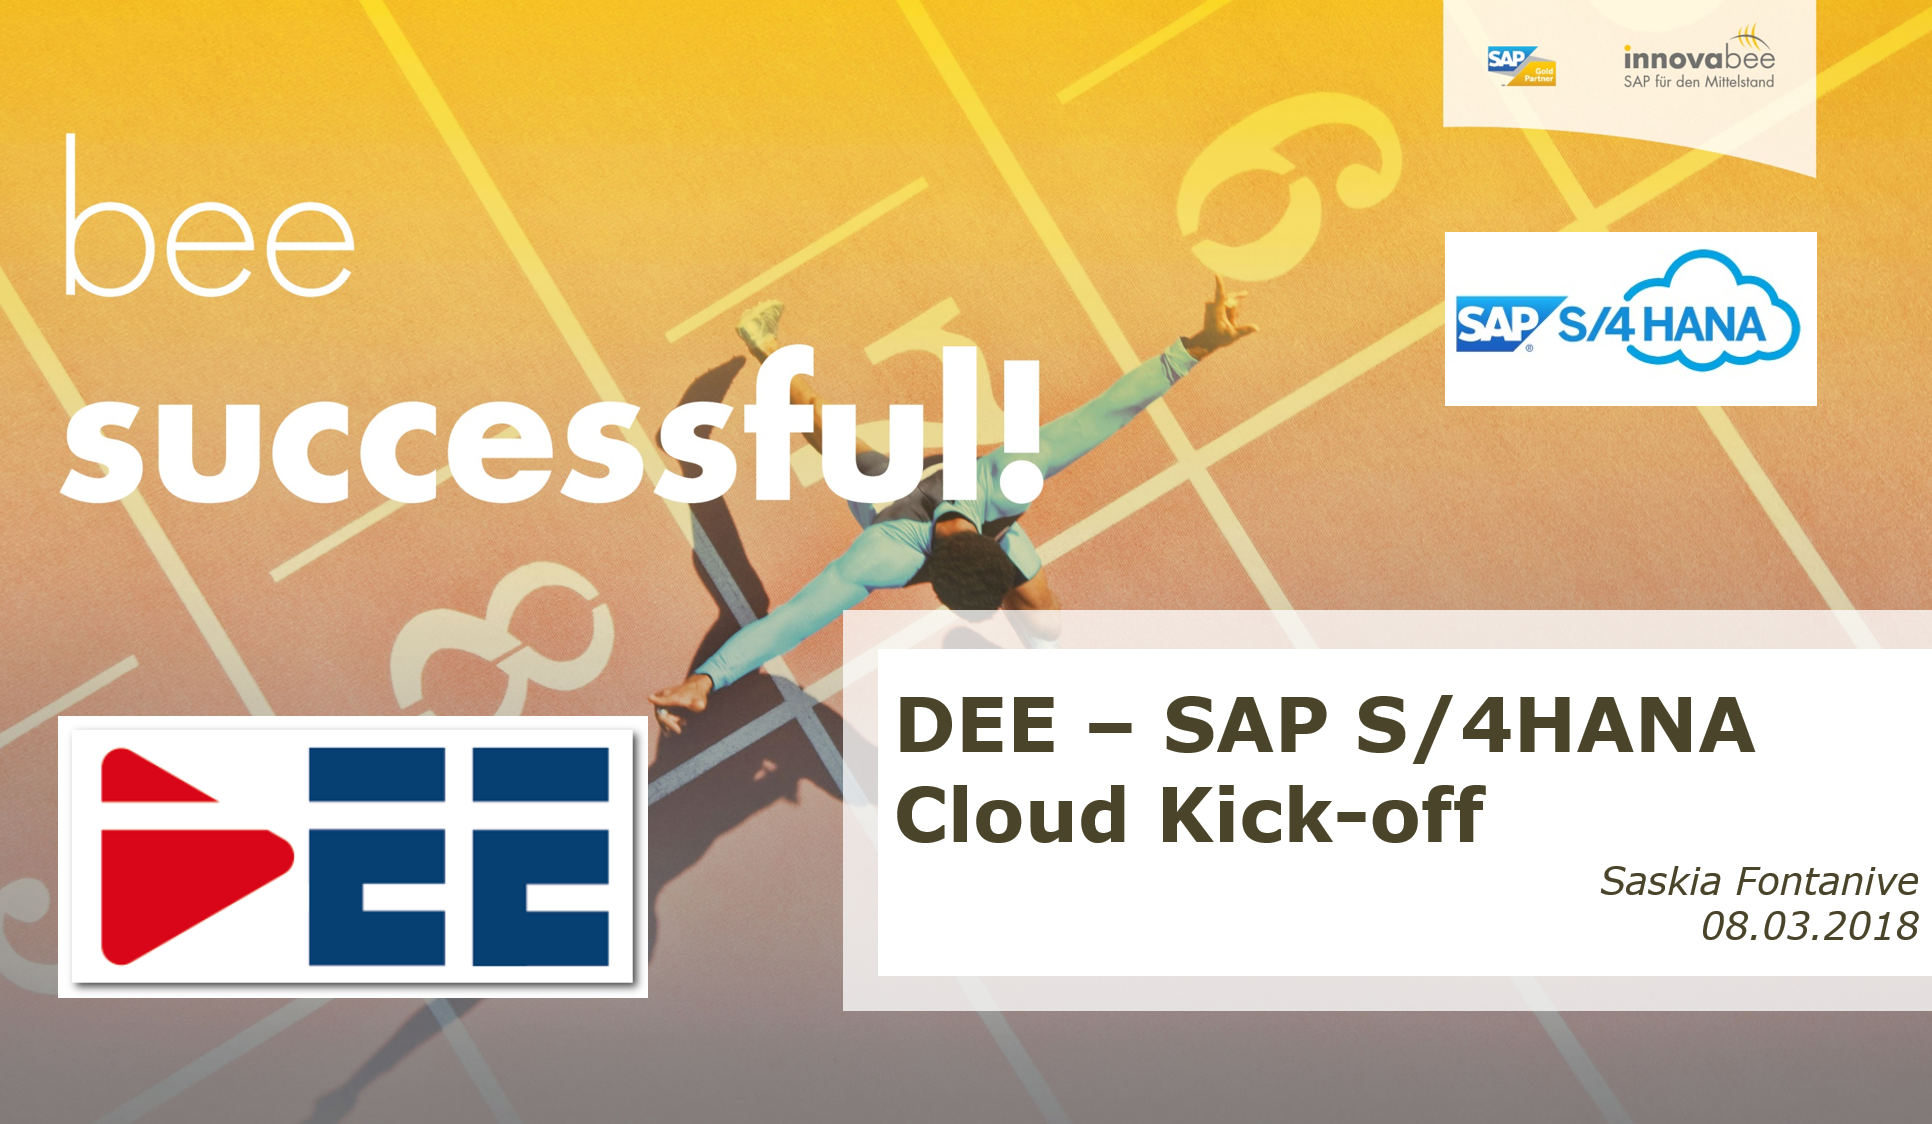 Folie 1 - SAP S/4HANA Cloud bei DEE